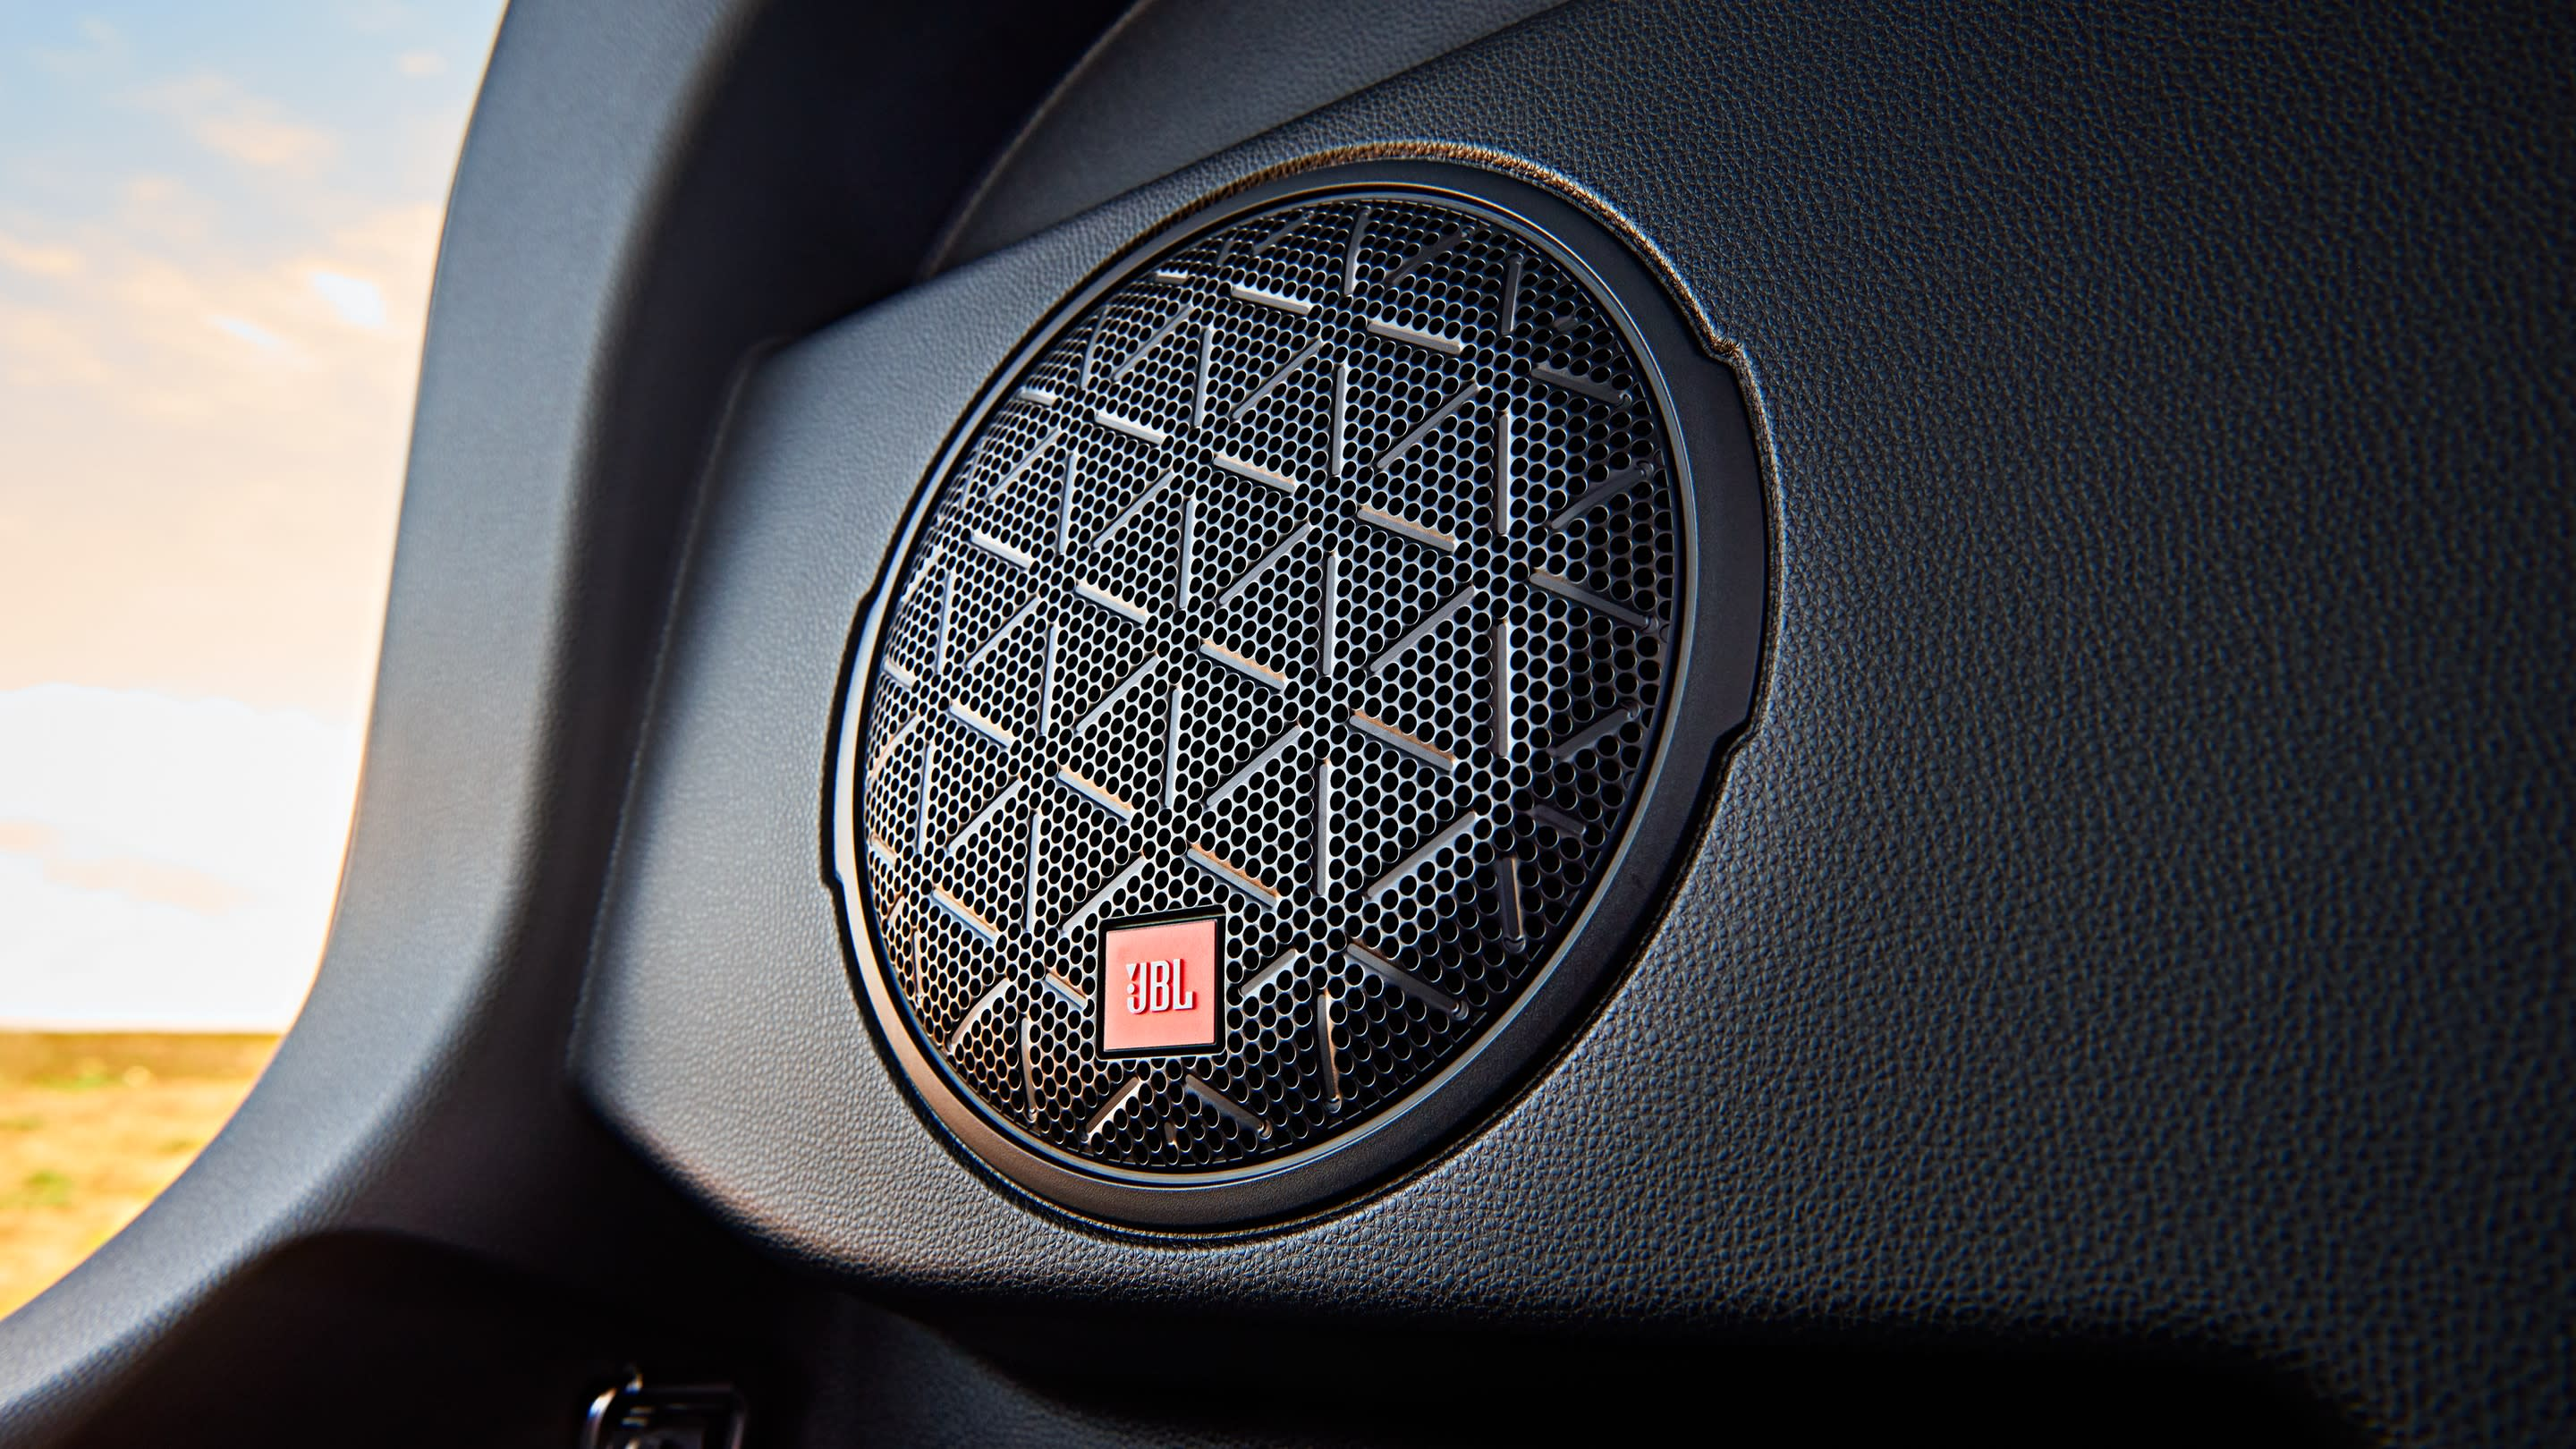 2019 Toyota RAV4 Speakers